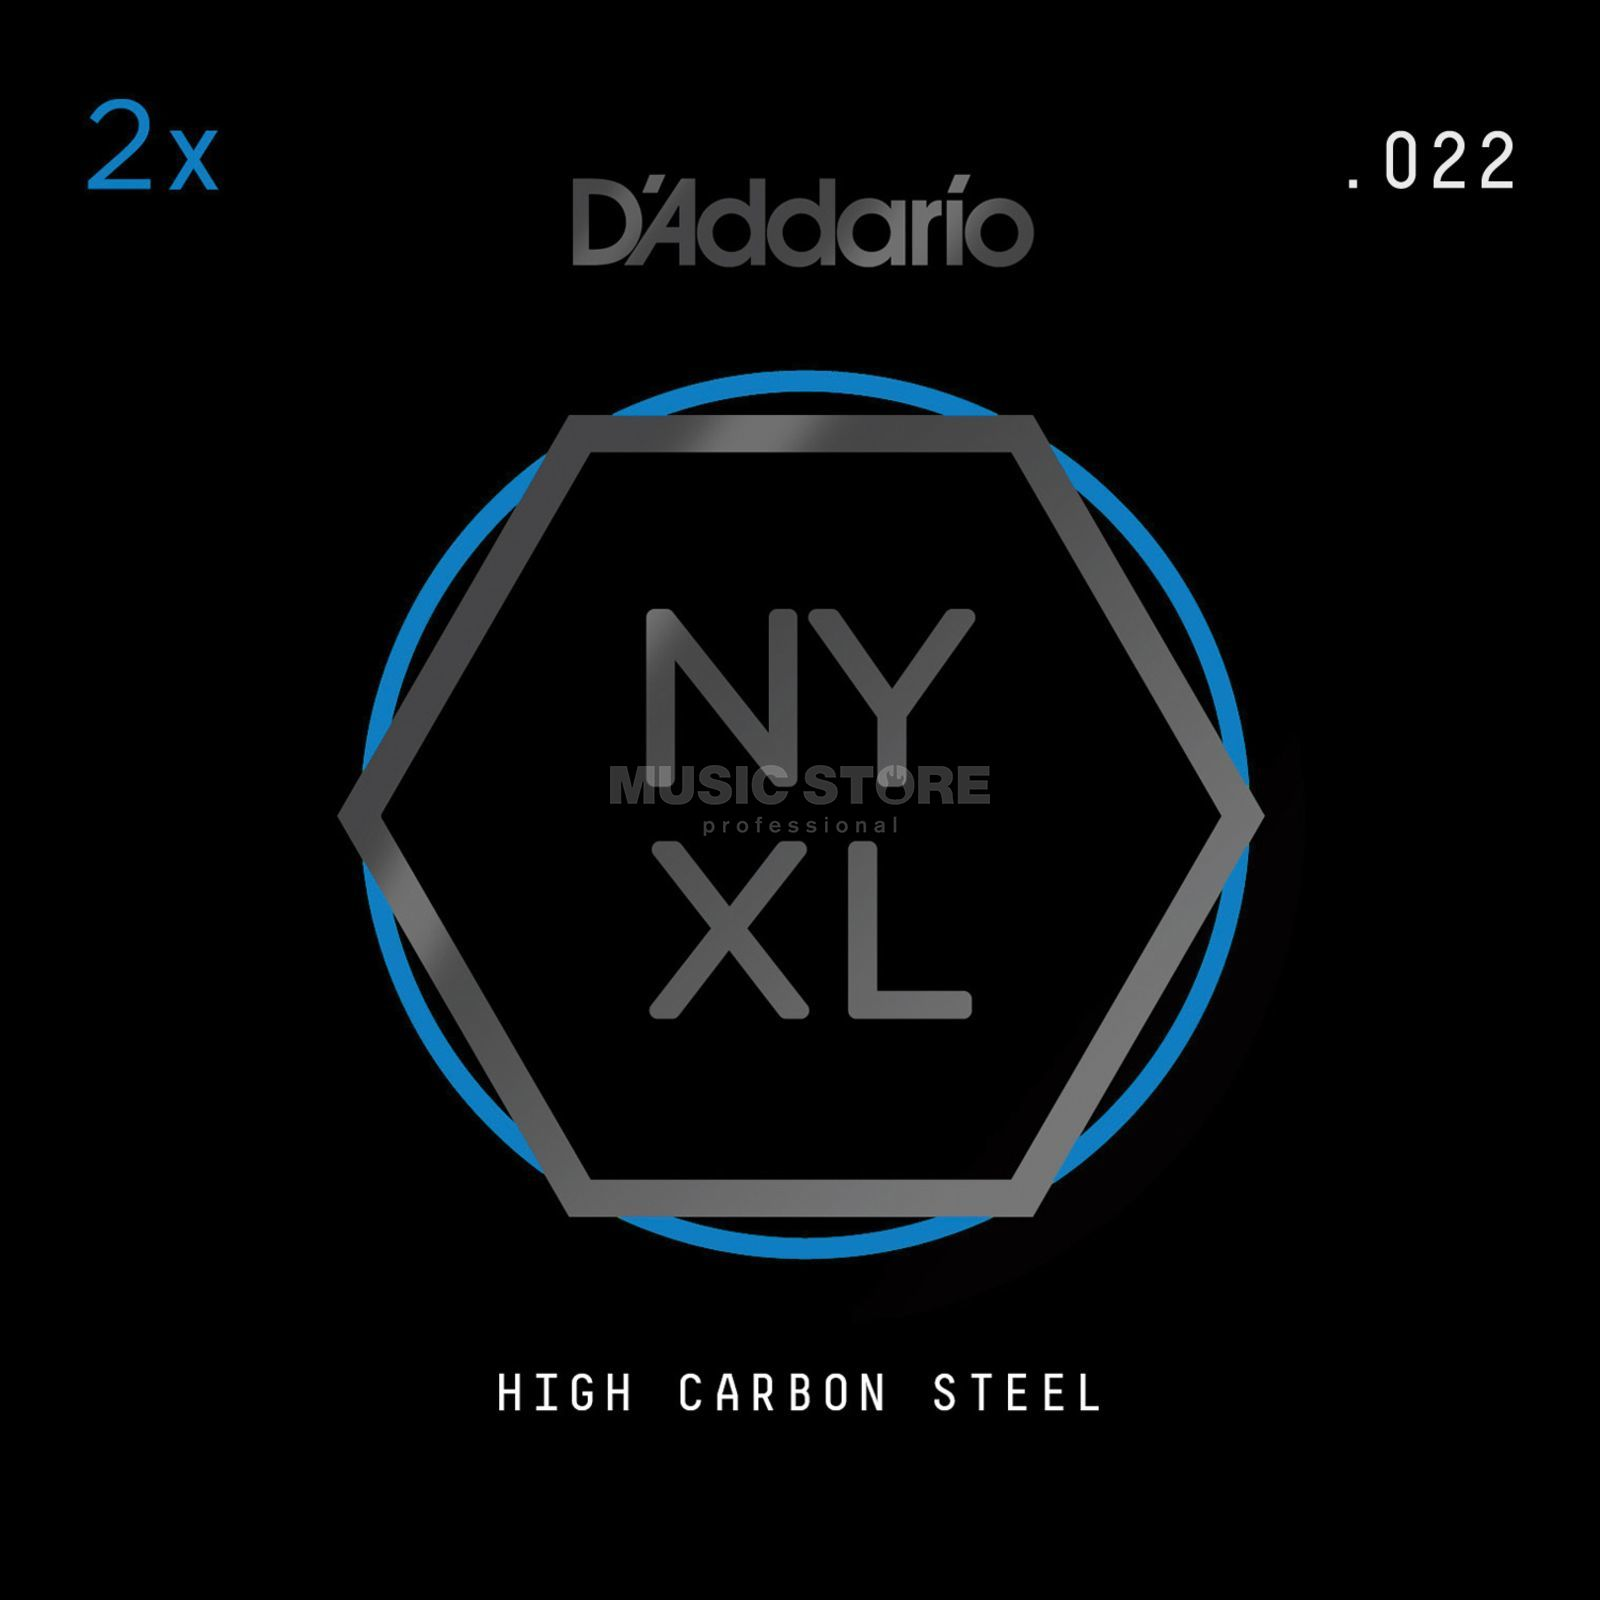 D'Addario NYPL022 Plain Single String 2-Pack - High Carbon Steel Product Image